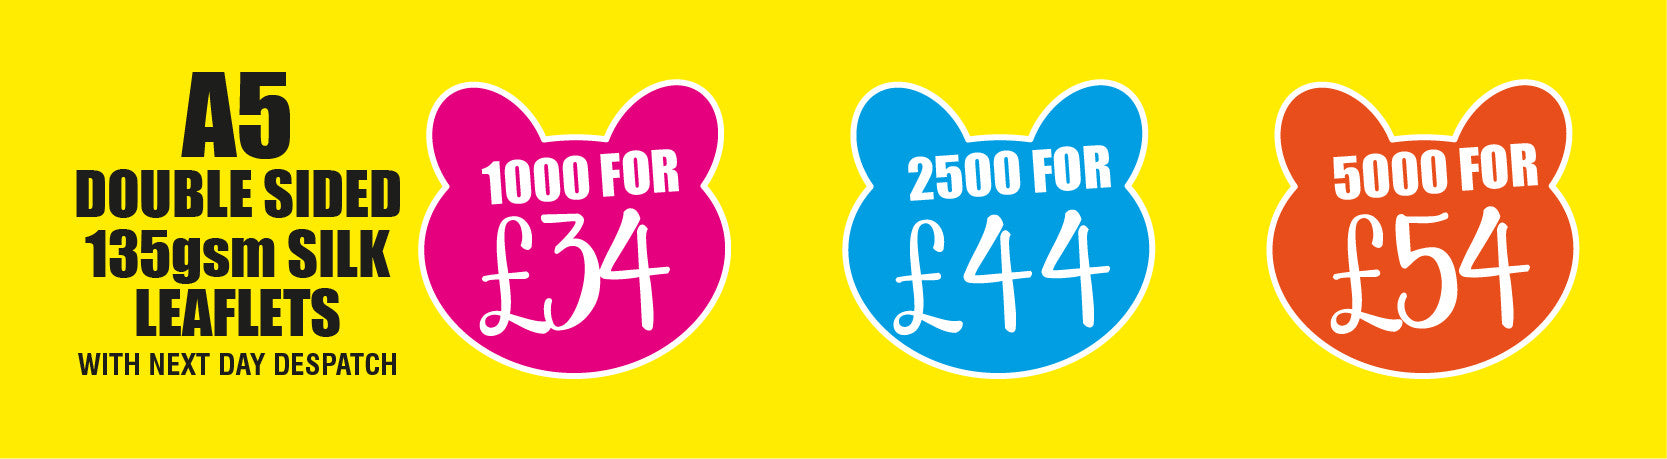 great prices on A5 leaflets